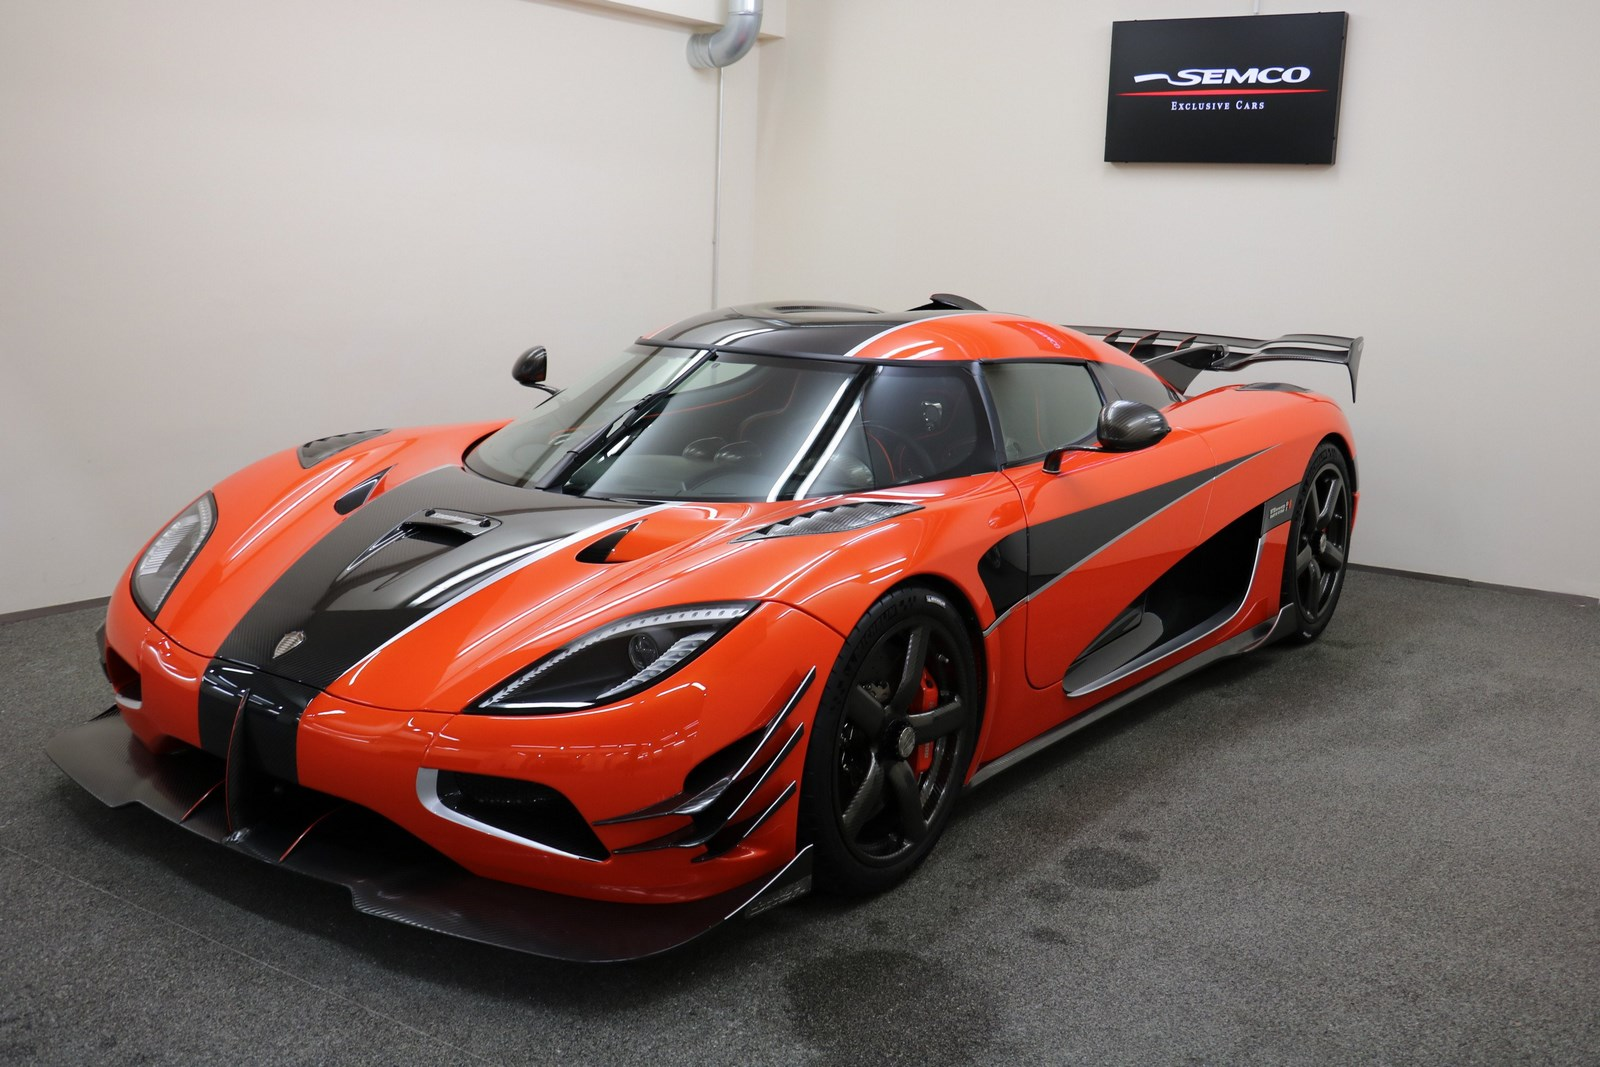 Lamborghini Veneno For Sale >> Koenigsegg Agera RS One of 1 for sale